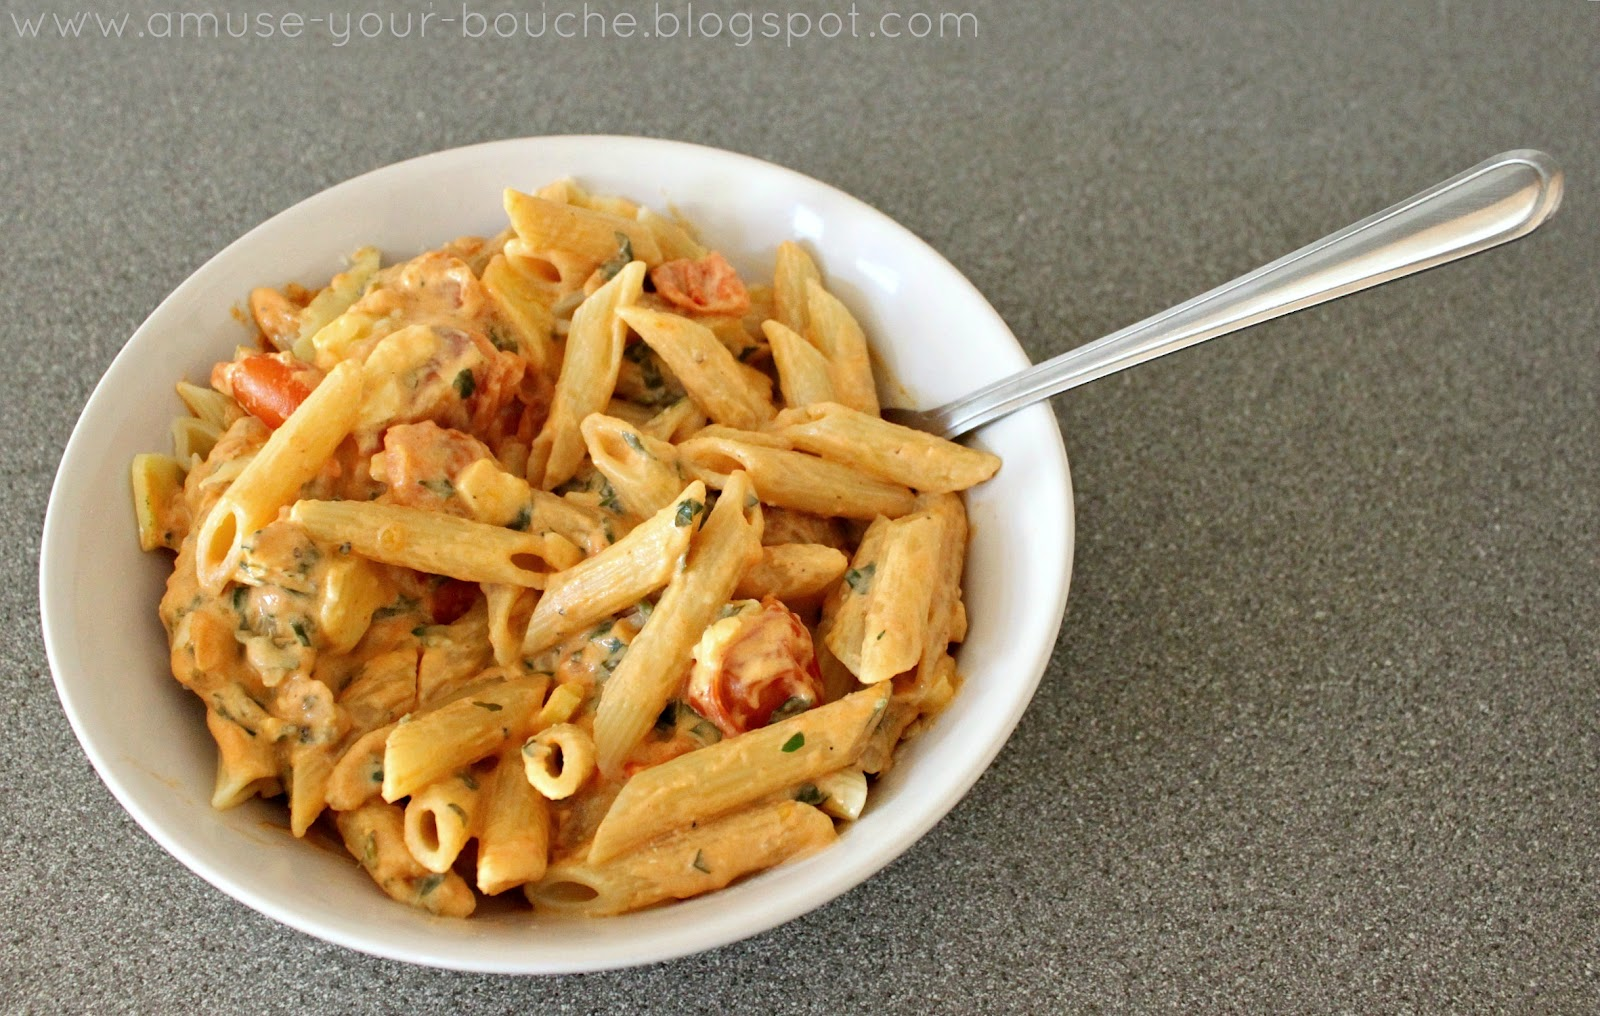 ... moved! For this recipe, please see here: tomato cream pasta sauce